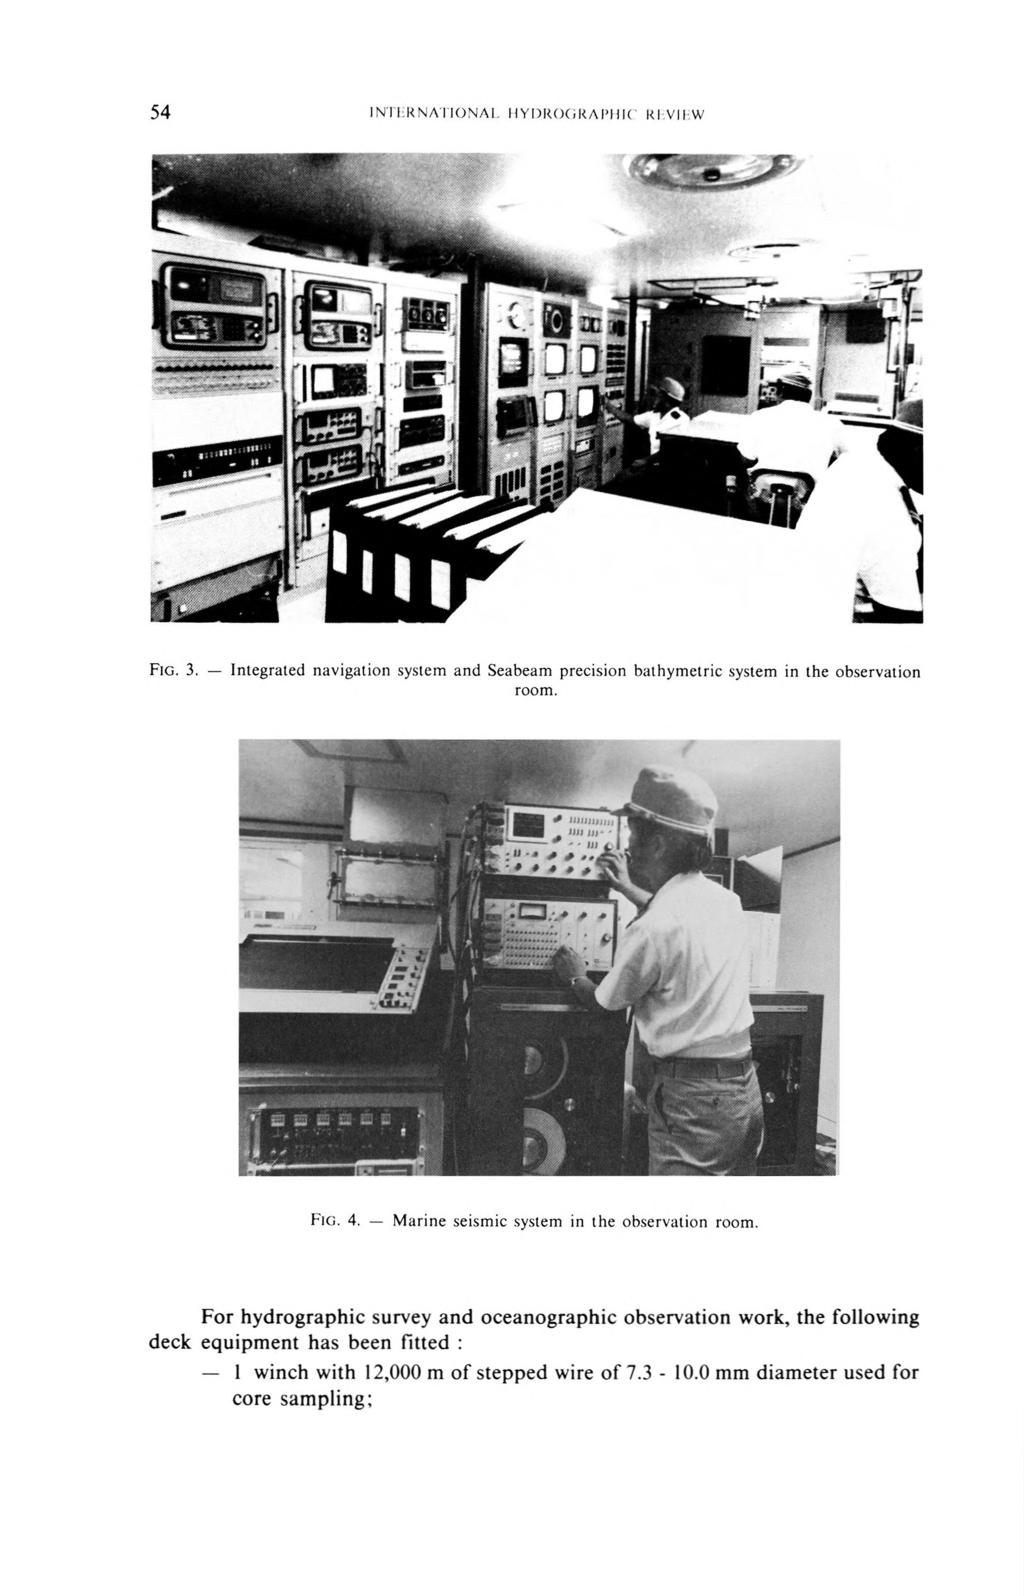 Fig. 3. Integrated navigation system and Seabeam precision bathym etric system in the observation room. F ig. 4. M arine seism ic system in the observation room.